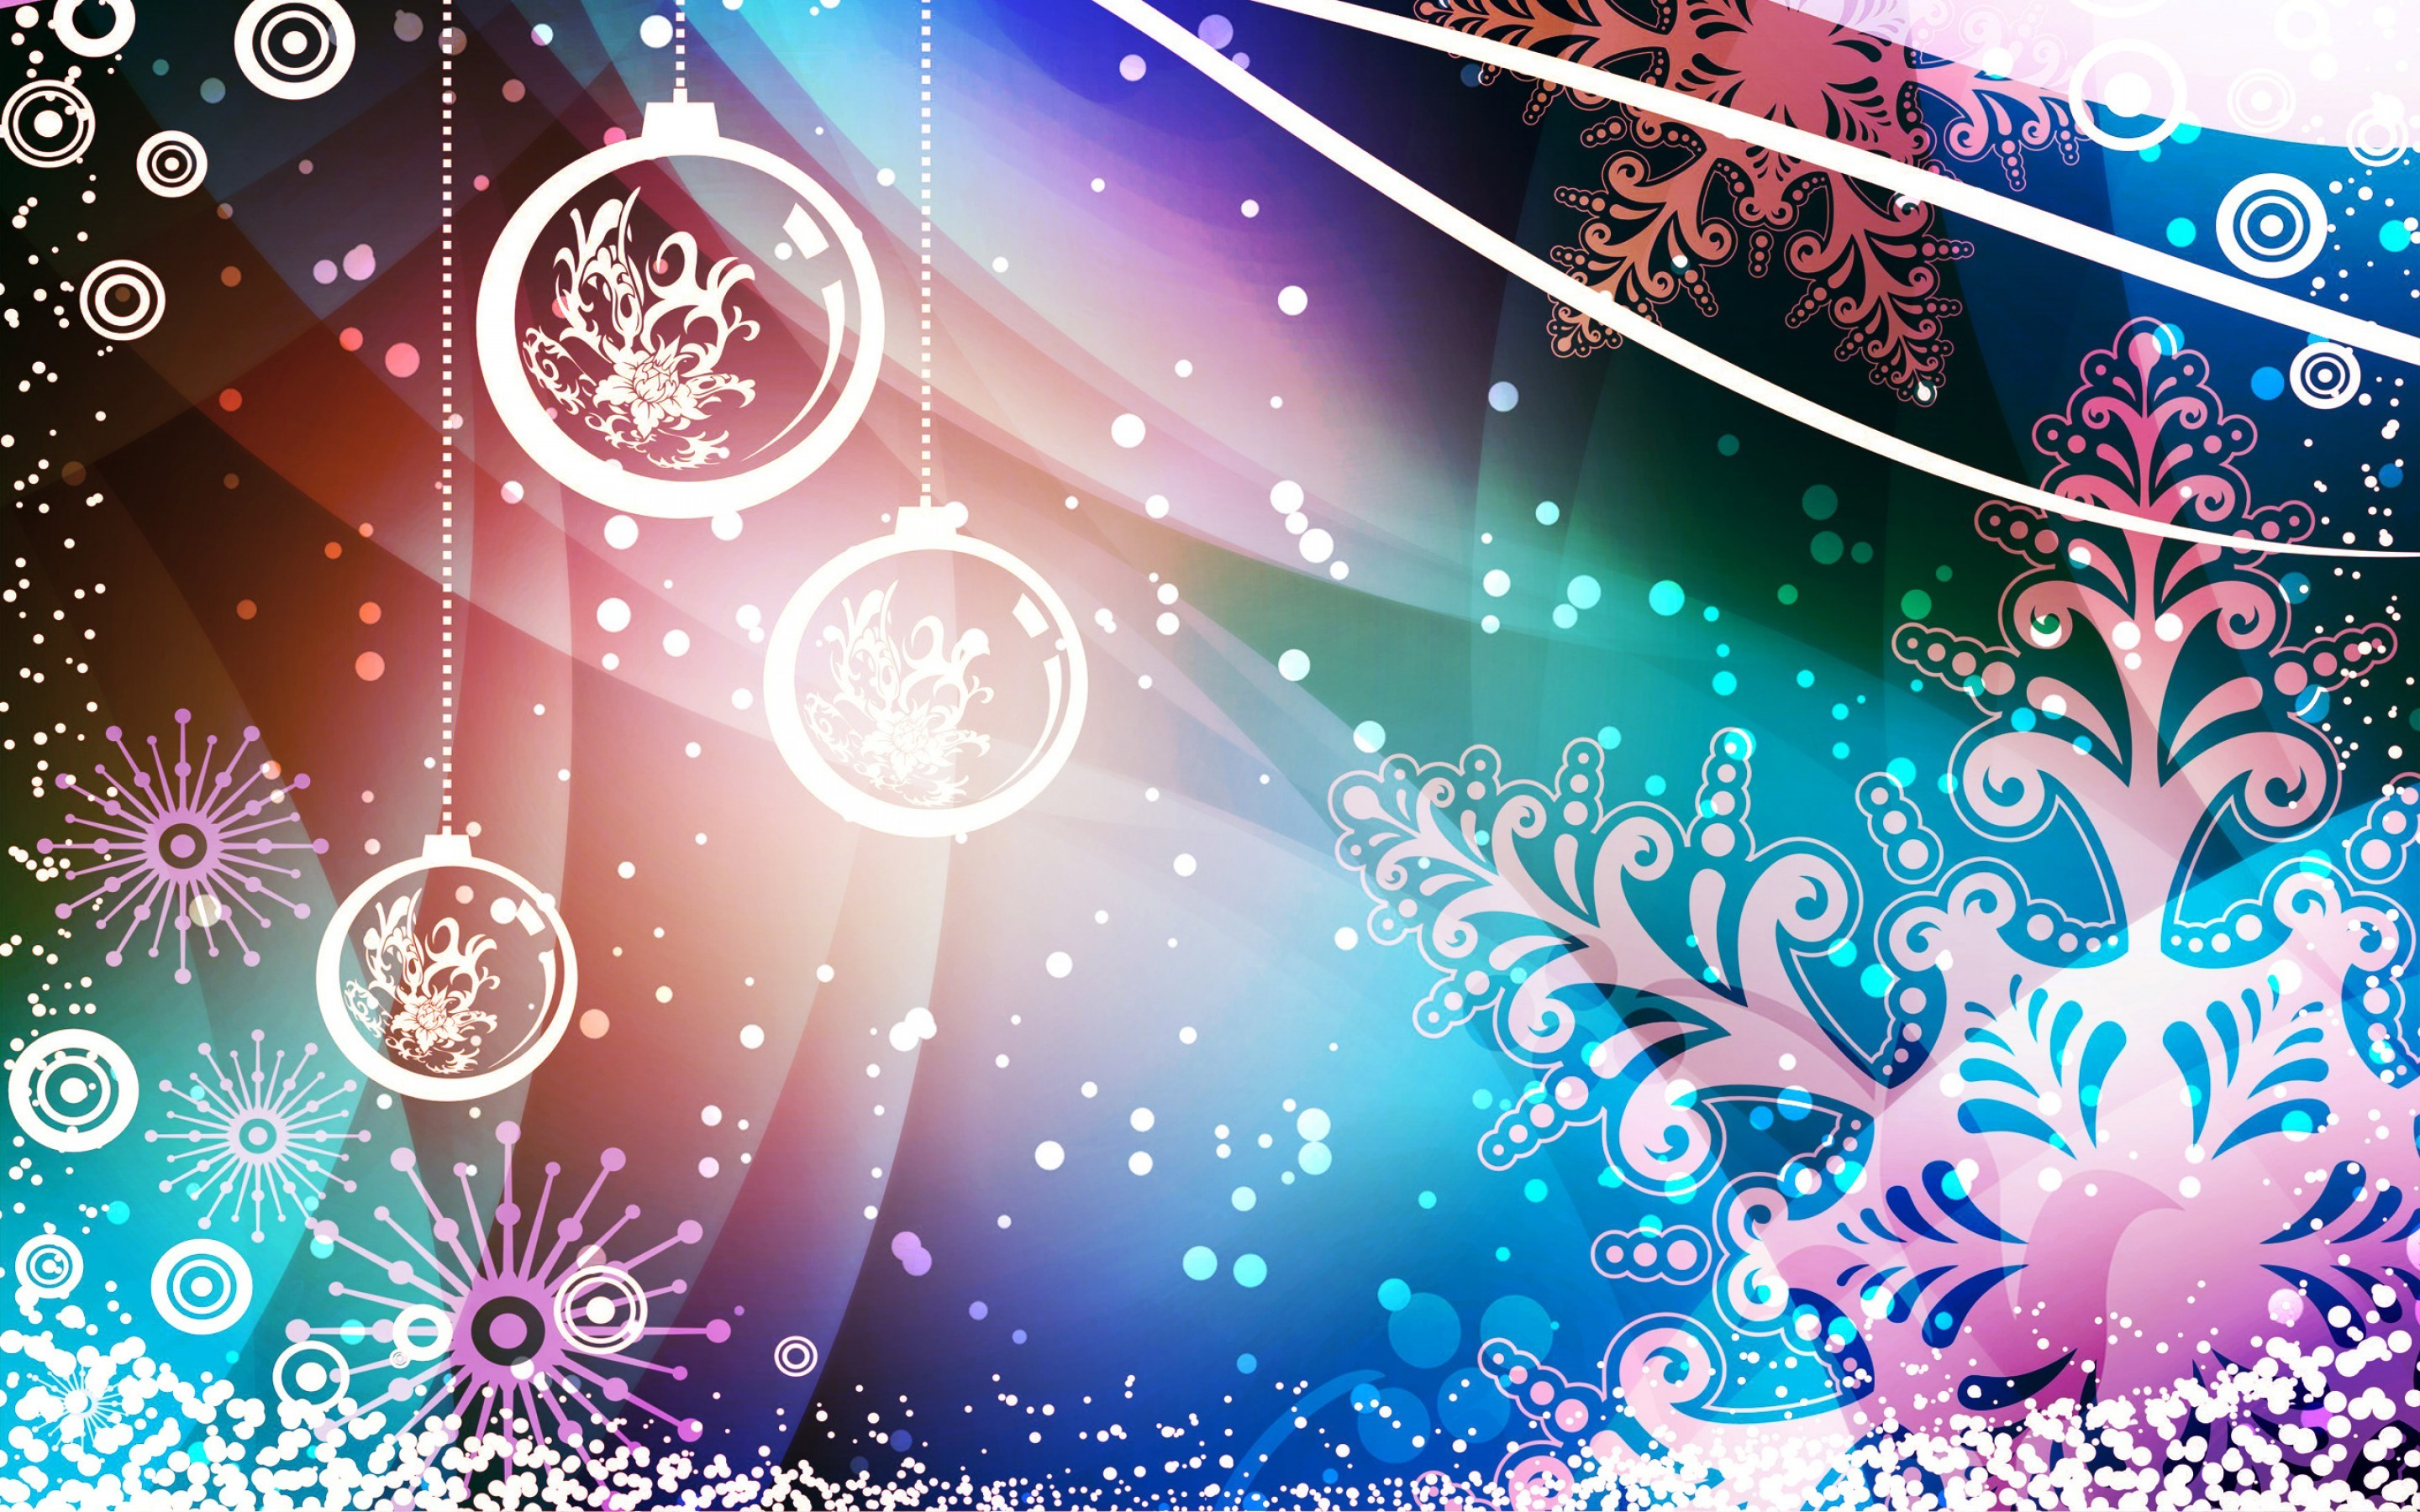 wallpaper christmas wallpapers - photo #19